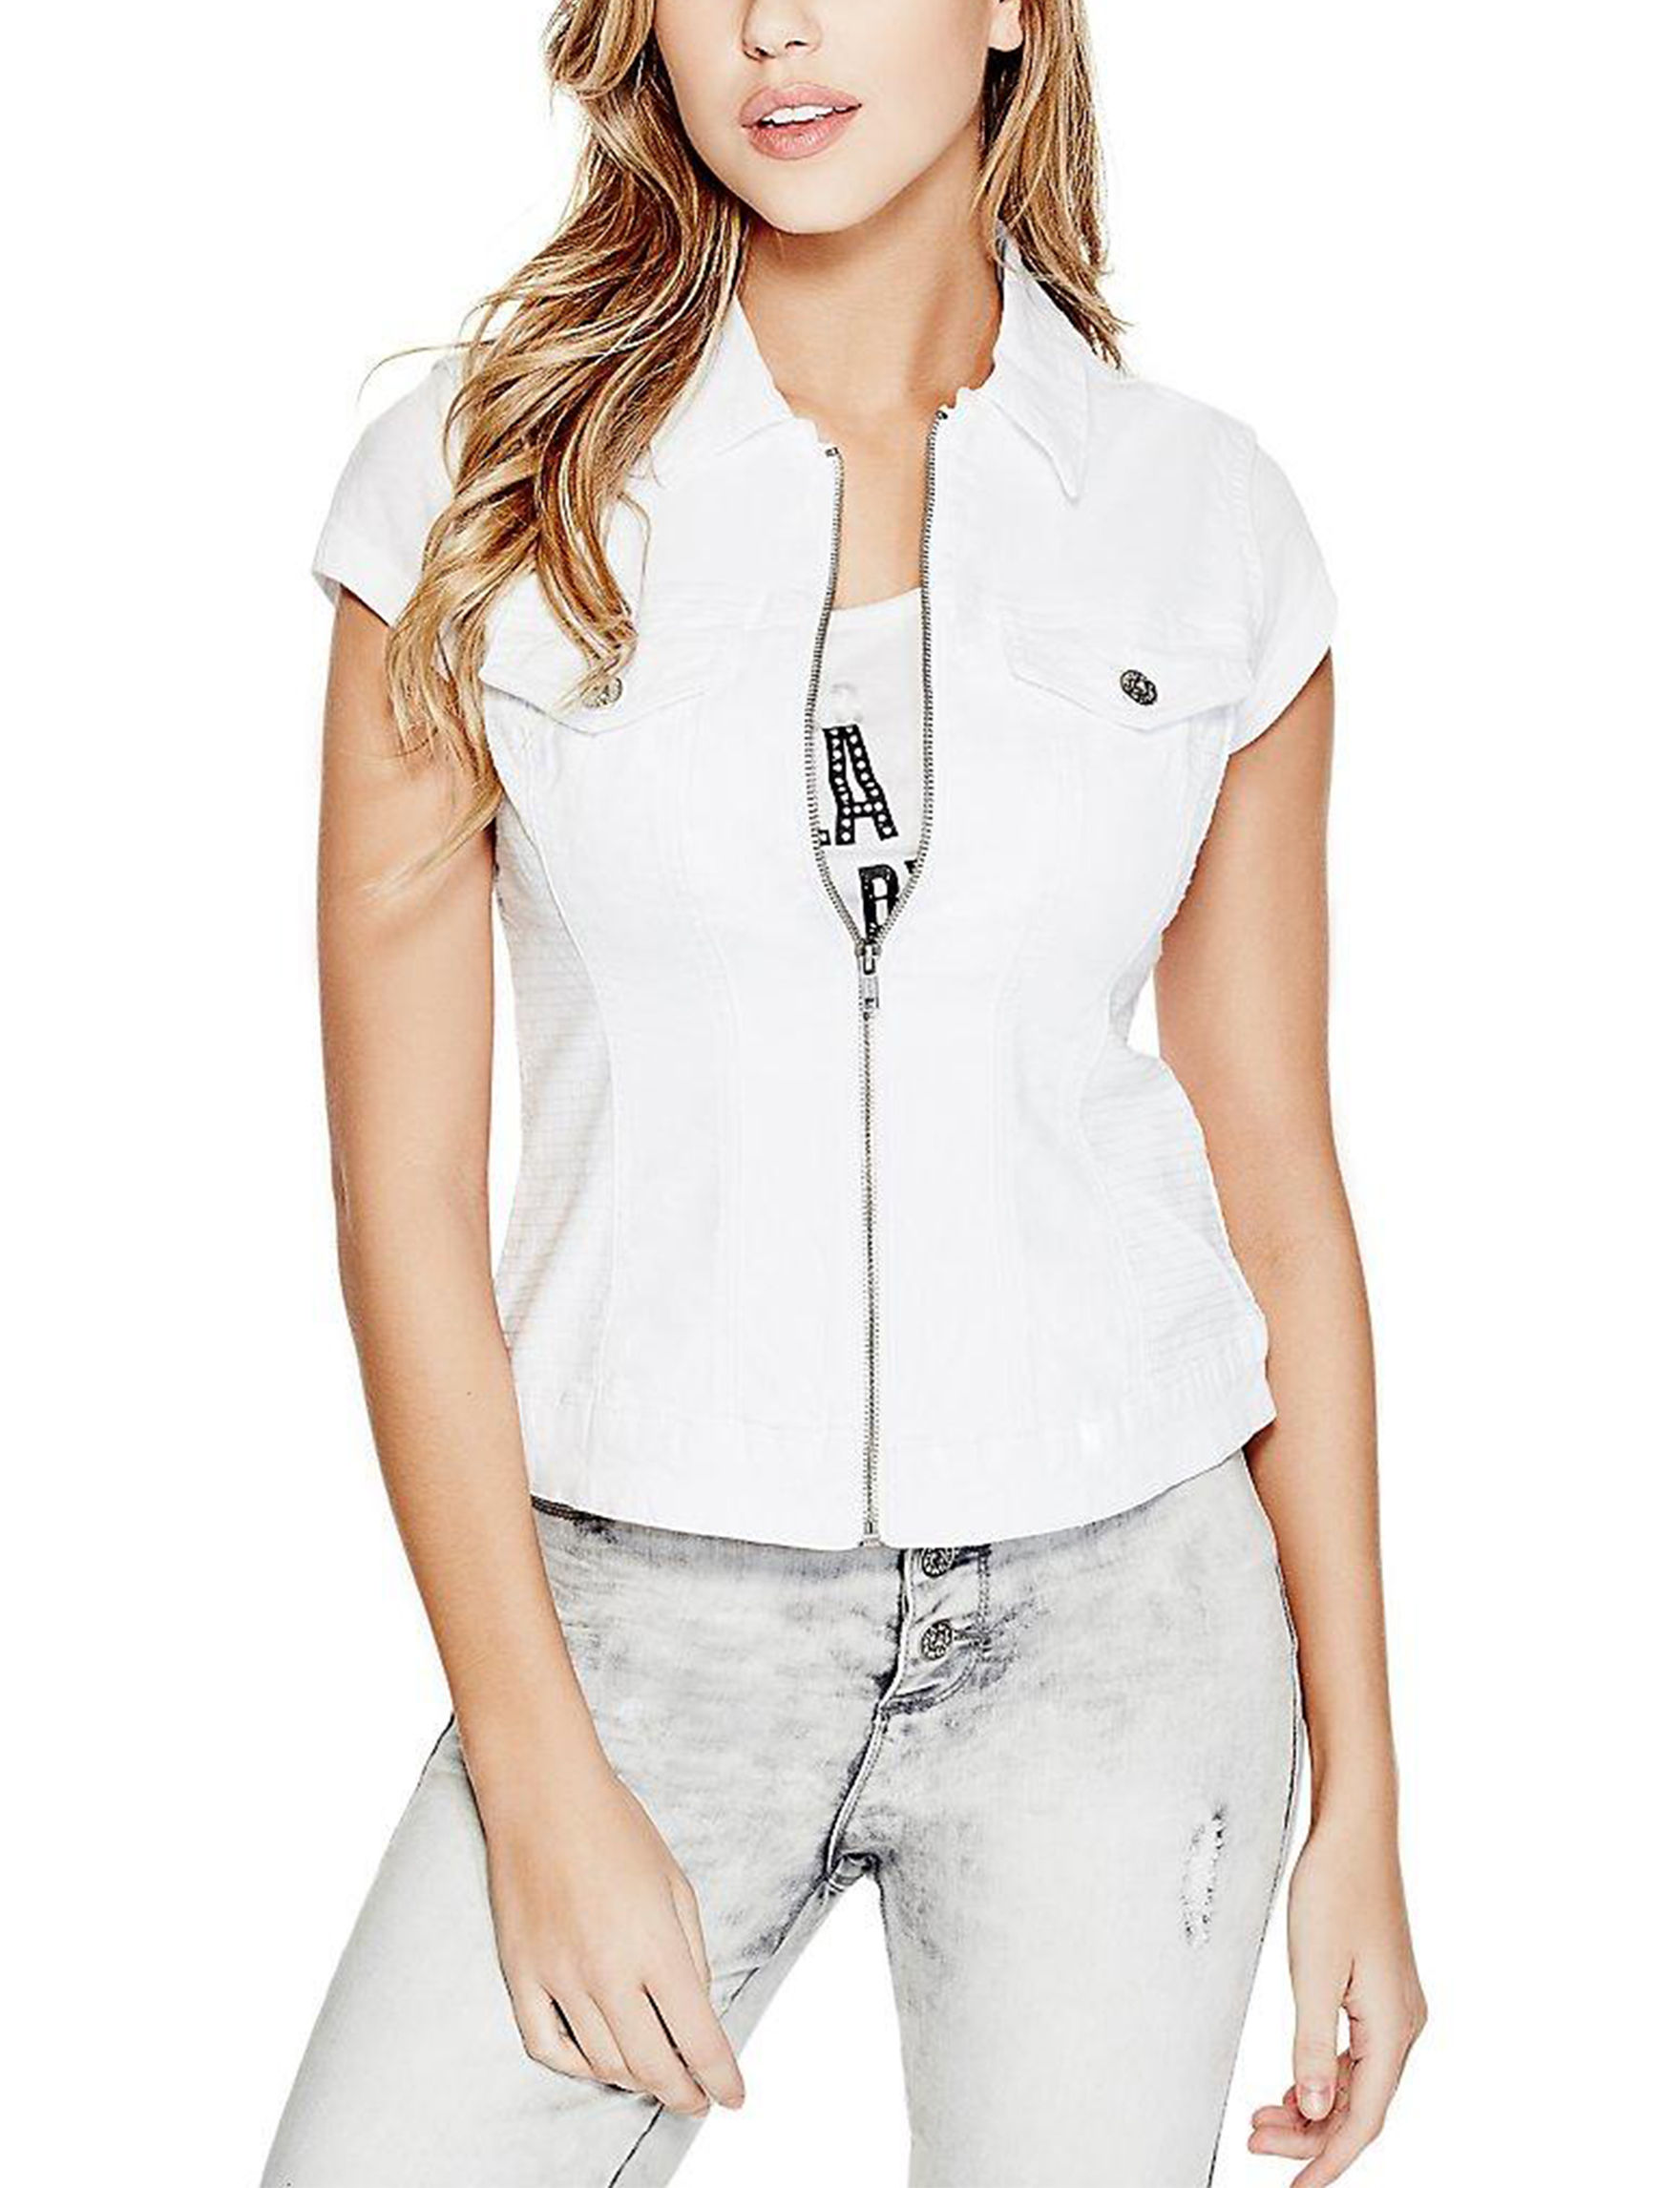 G by Guess White Vests